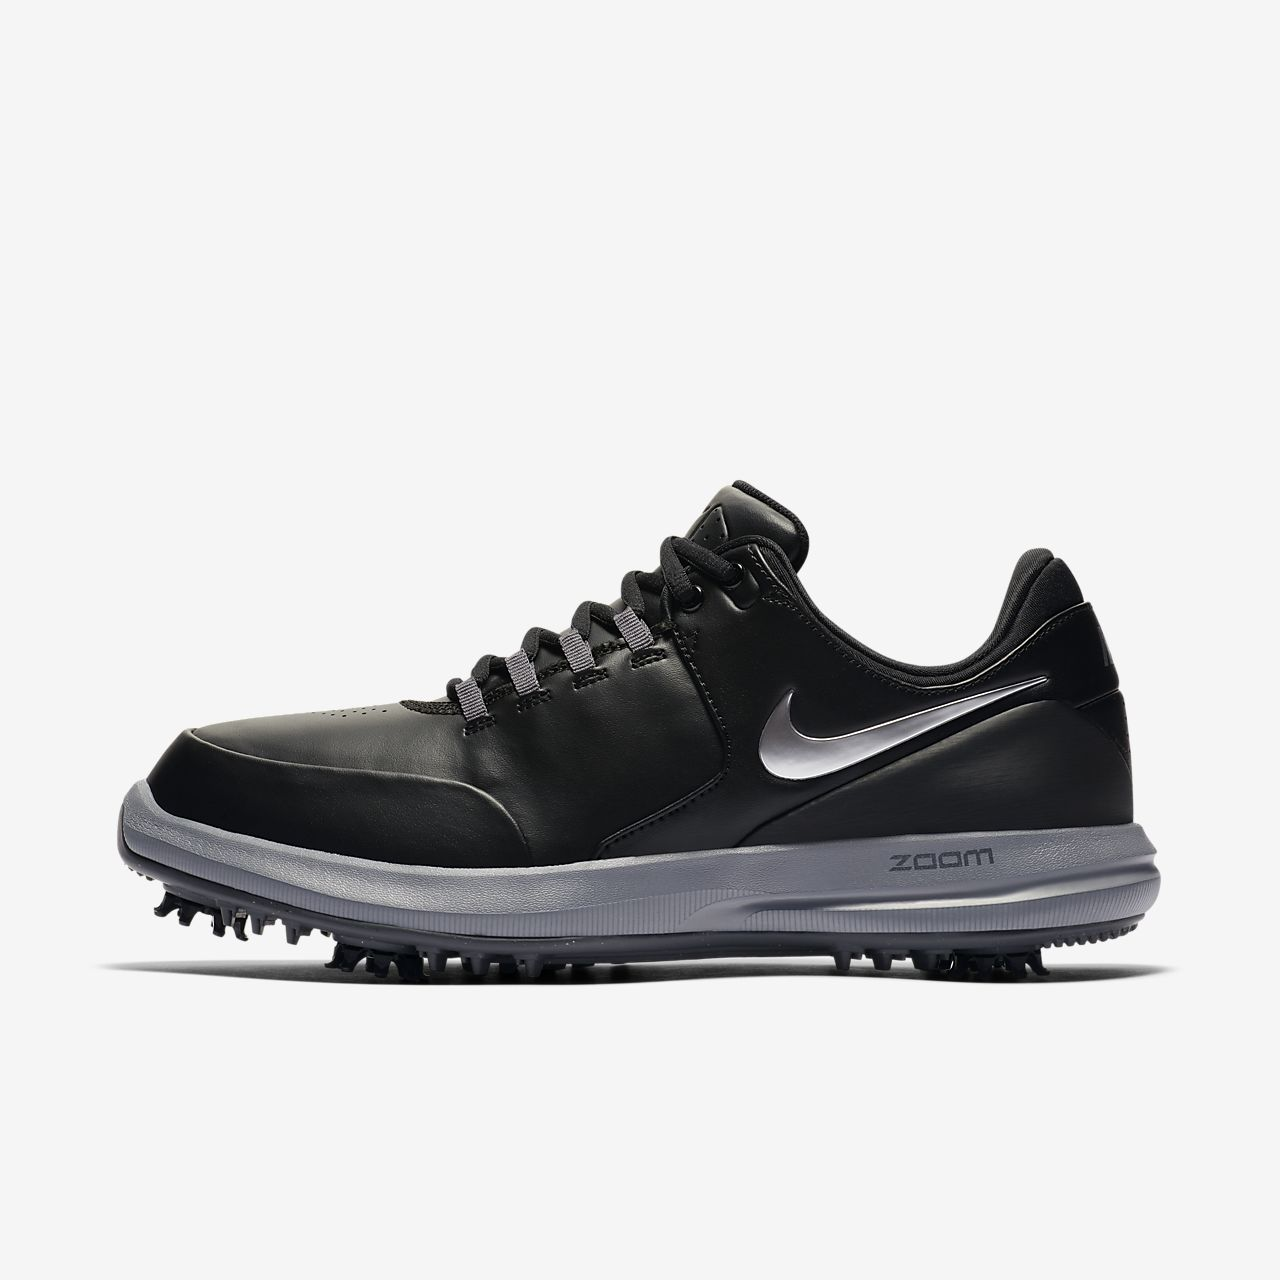 low priced 82ce1 02792 Mens Golf Shoe. Nike Air Zoom Accurate